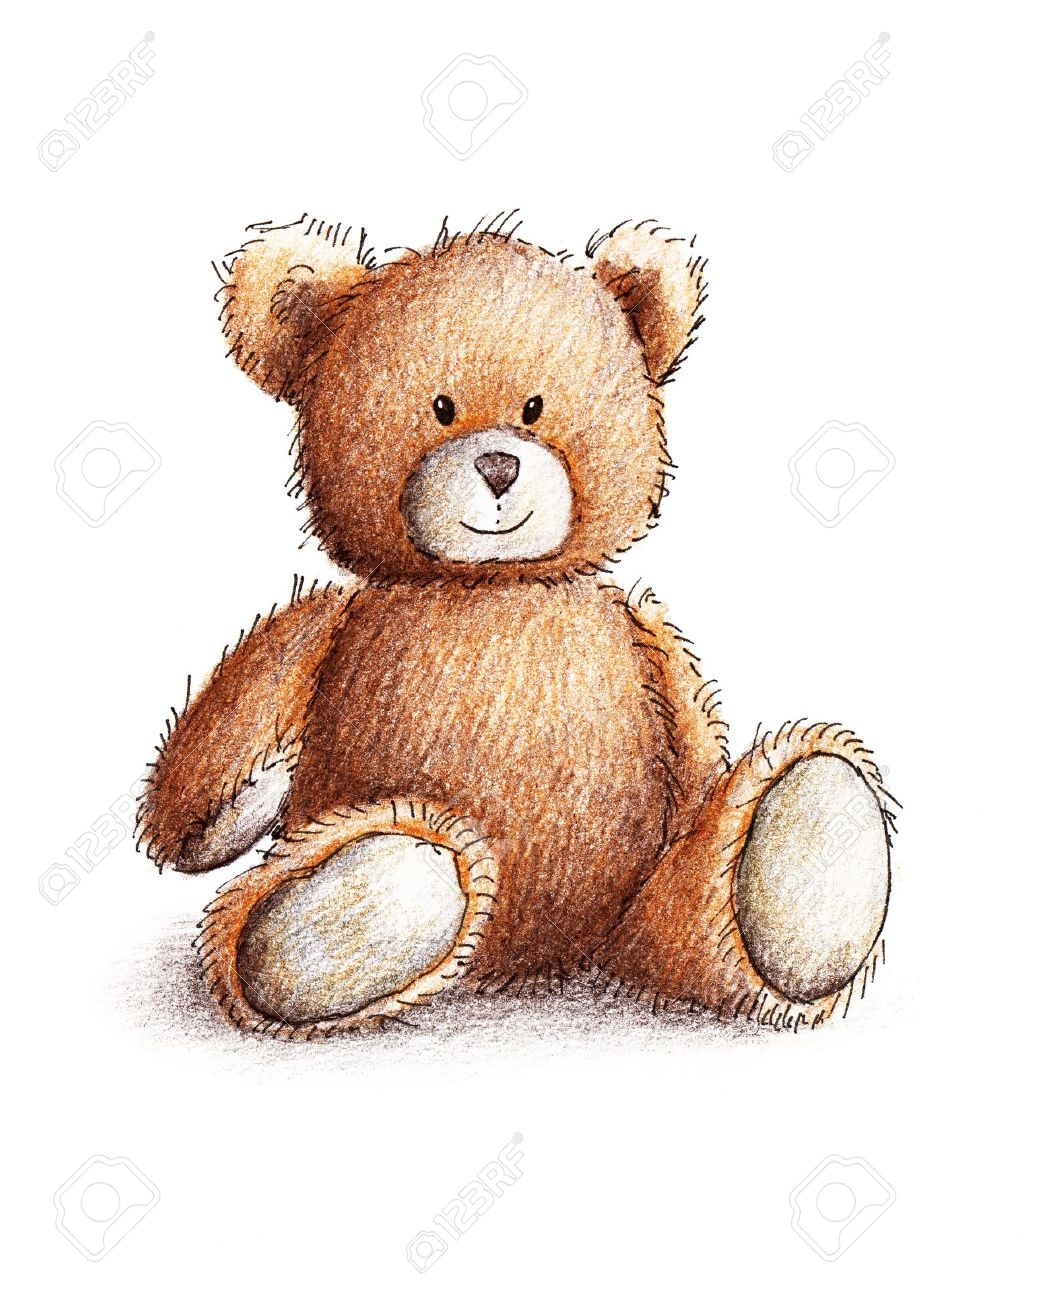 Teddy bear pencil drawing at getdrawings free for personal use 1063x1300 pencil drawing of a cute teddy bear bear pencil images amp stock altavistaventures Image collections